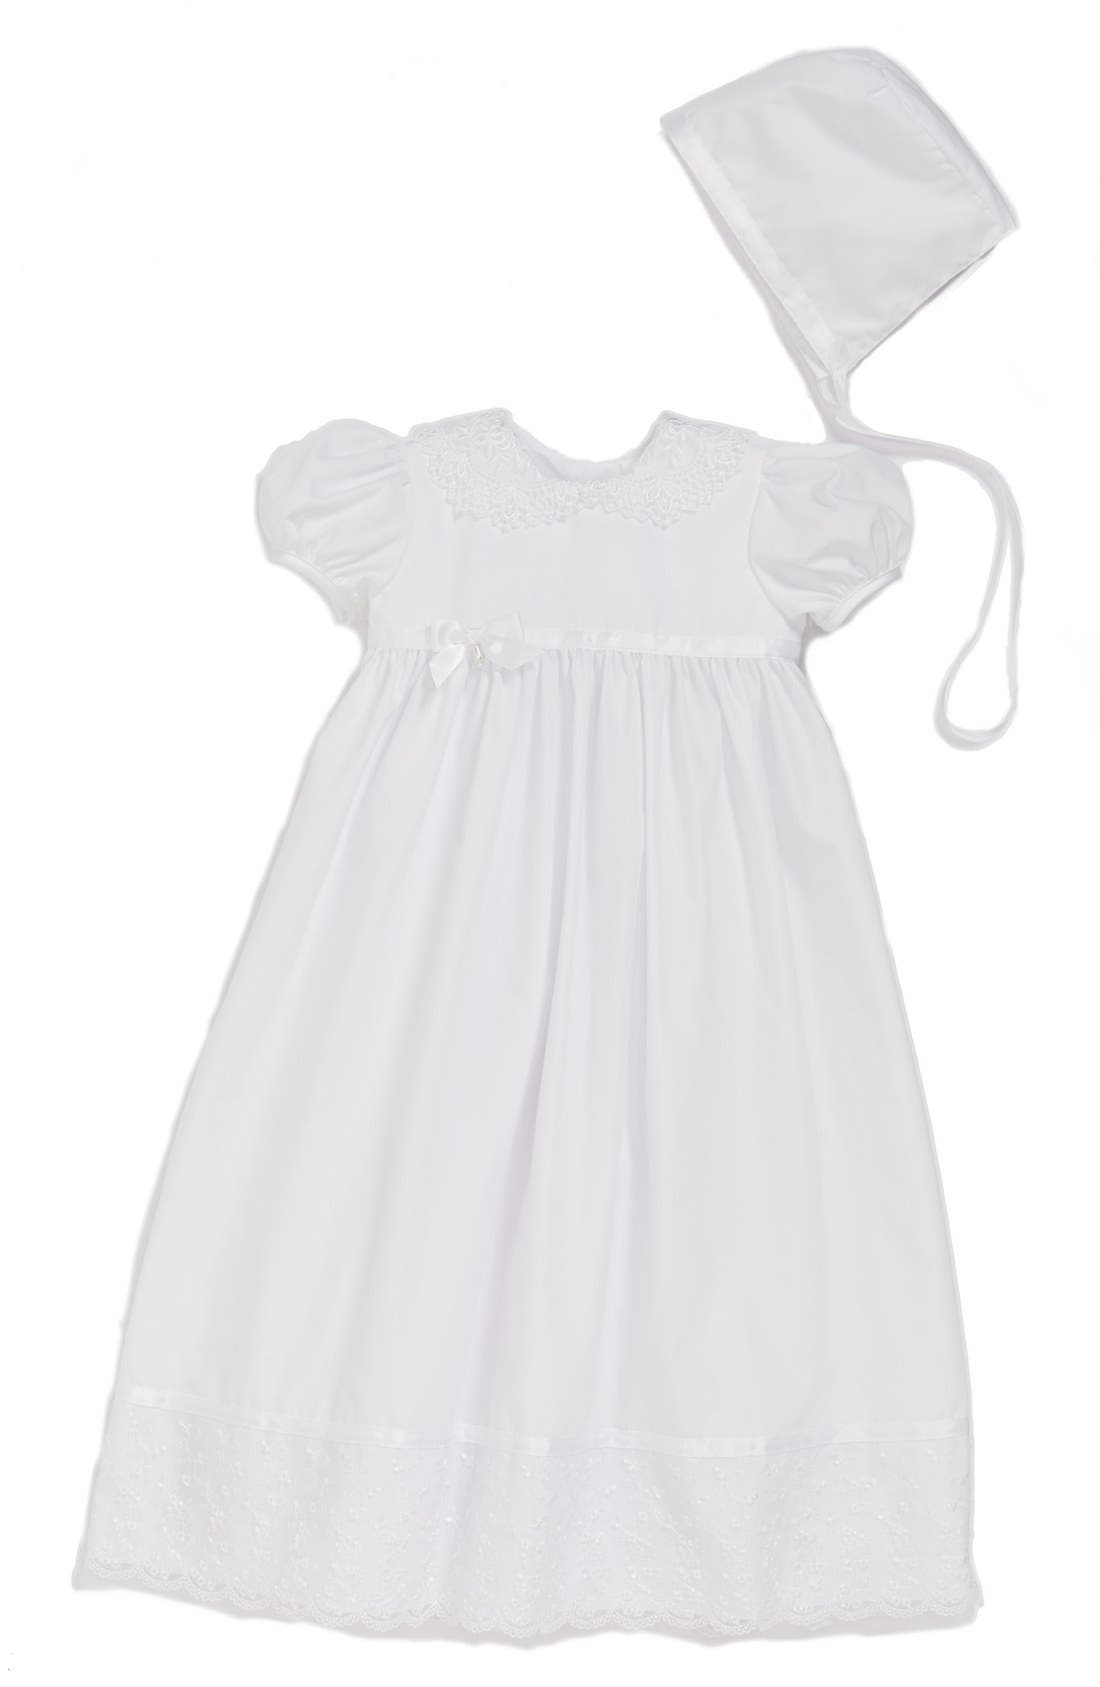 Main Image - Little Things Mean a Lot Lace Collar Christening Gown and Bonnet Set (Baby Girls)